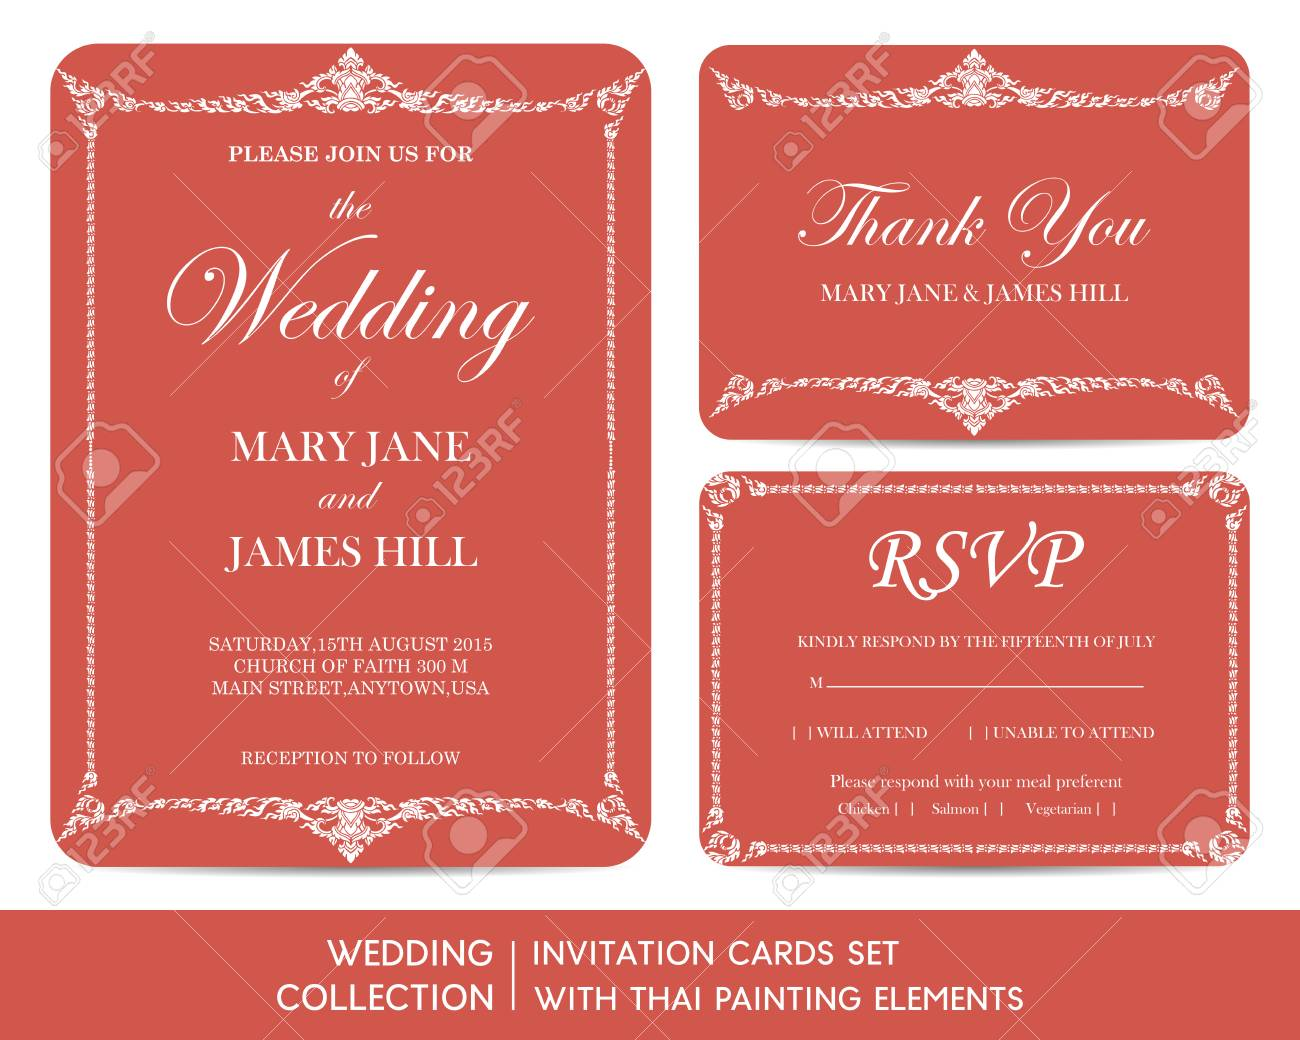 Wedding Invitation Cards Set With Thai Painting Elements Royalty ...